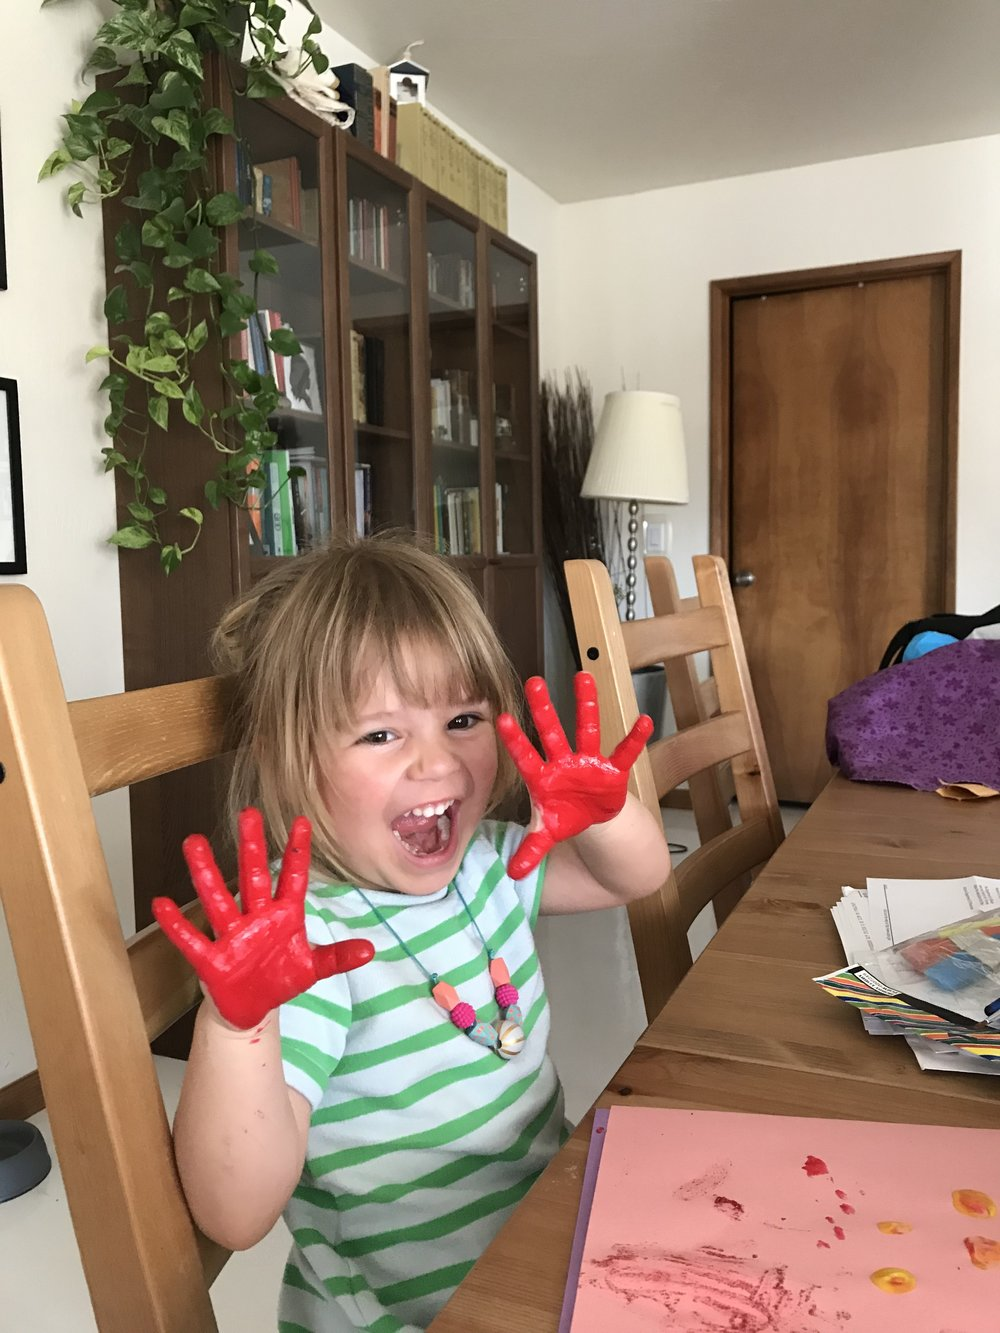 We were painting here, but I think this captures the chaos of a toddler.